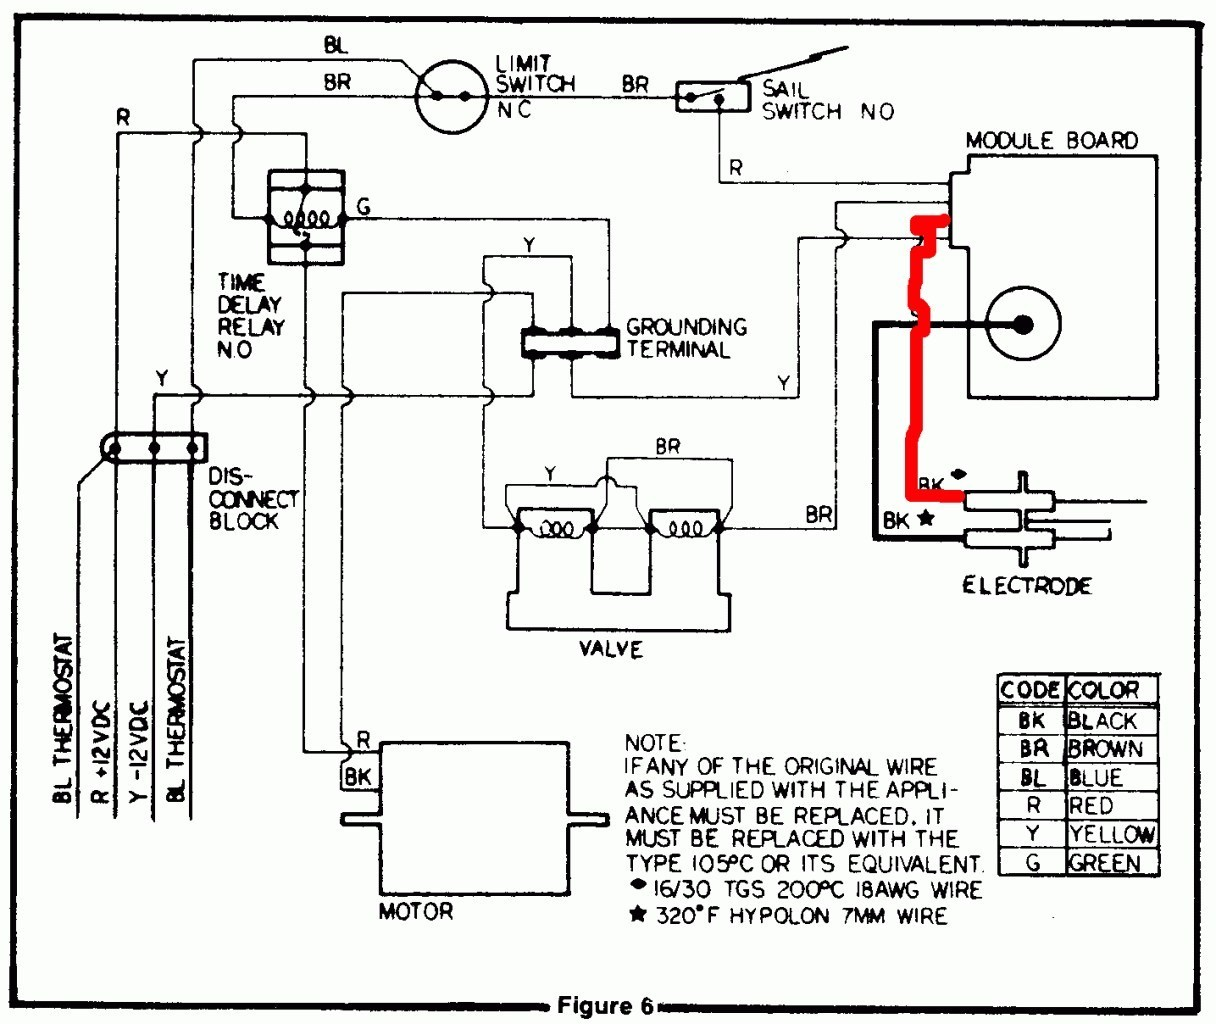 Ajj10dfv1 Wiring Diagram Air Conditioner - Trusted Wiring Diagram •